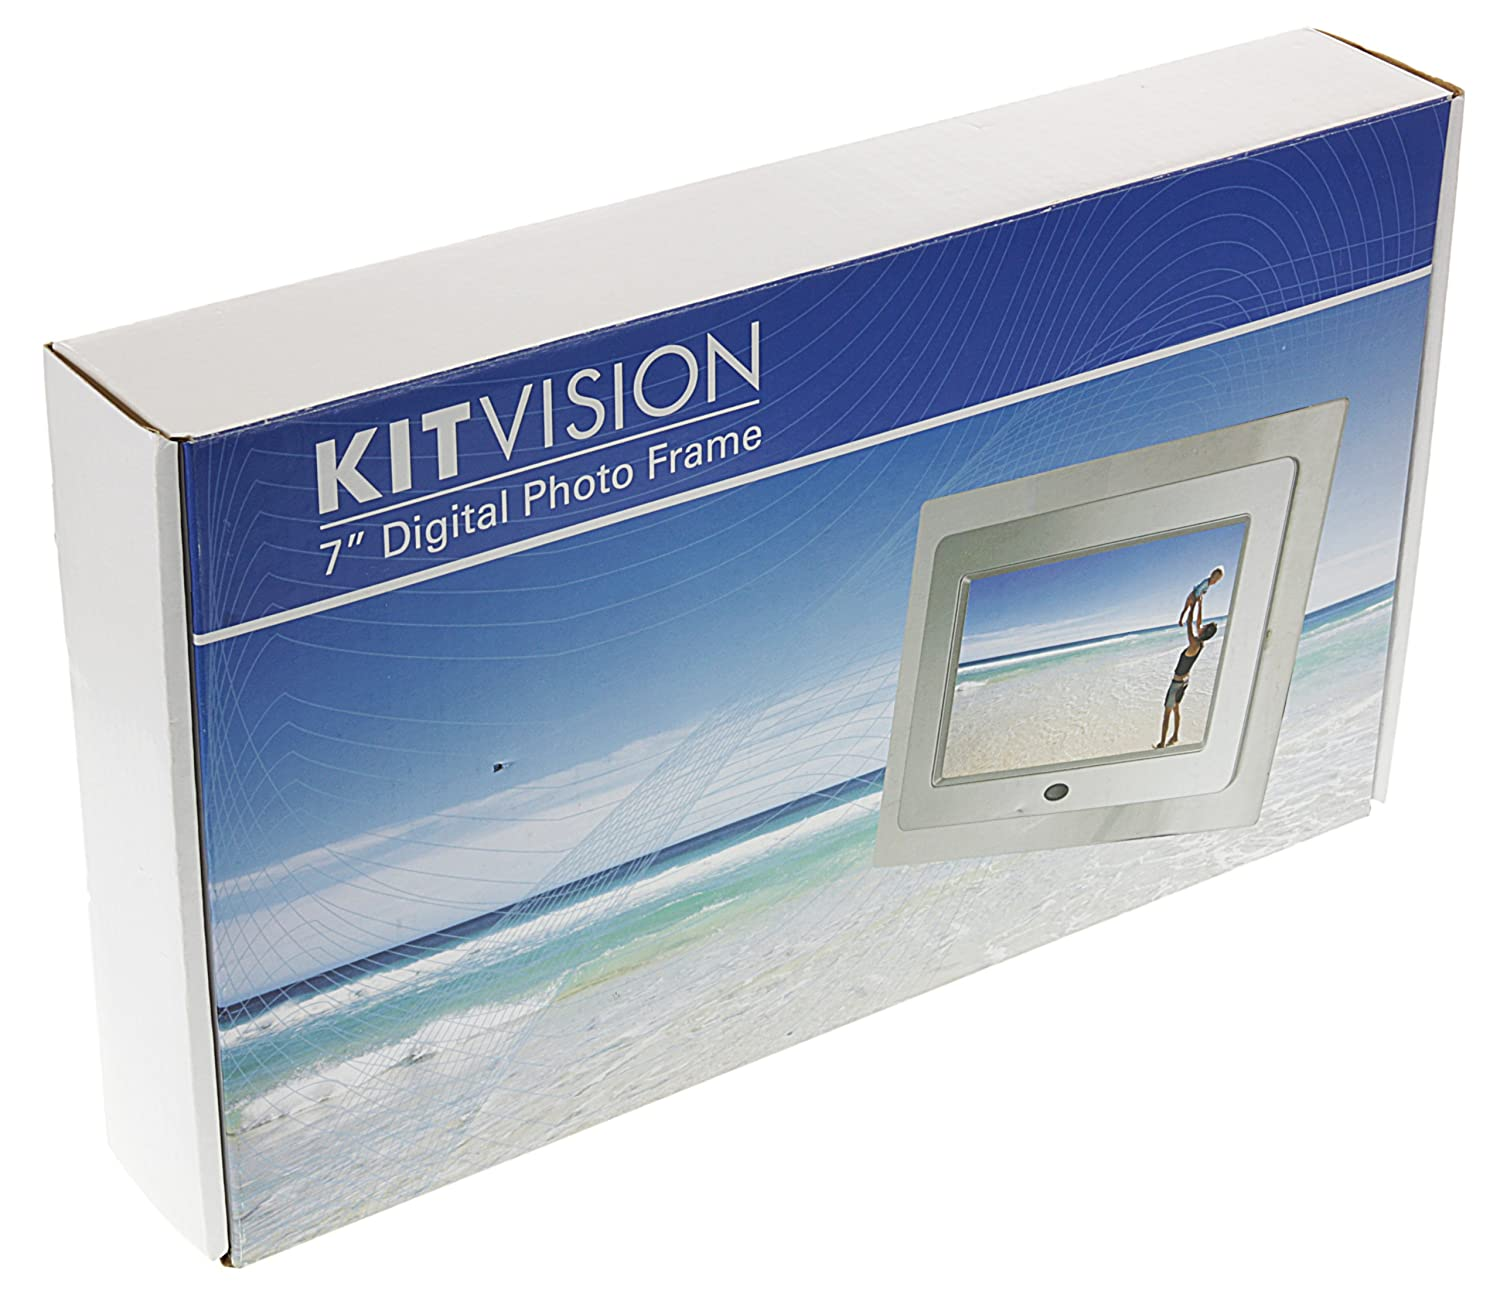 KitVision 7 inch Digital Photo Frame with Built-In: Amazon.co.uk ...